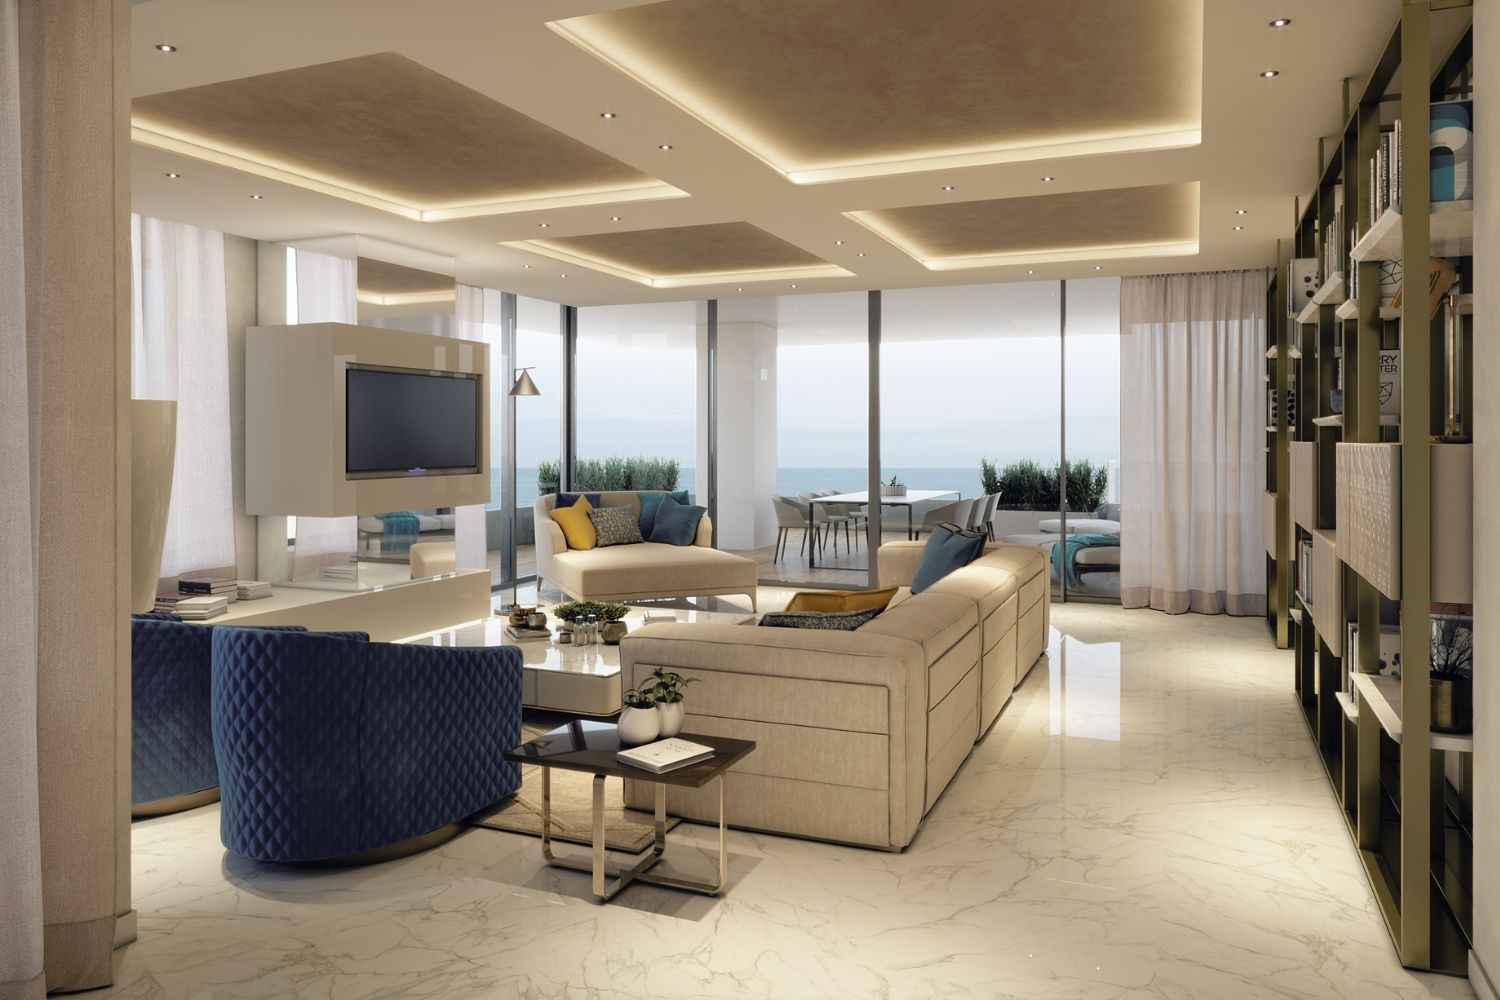 Enjoy the beauty of this living room, while you relax in front of the Sea. Studio D73